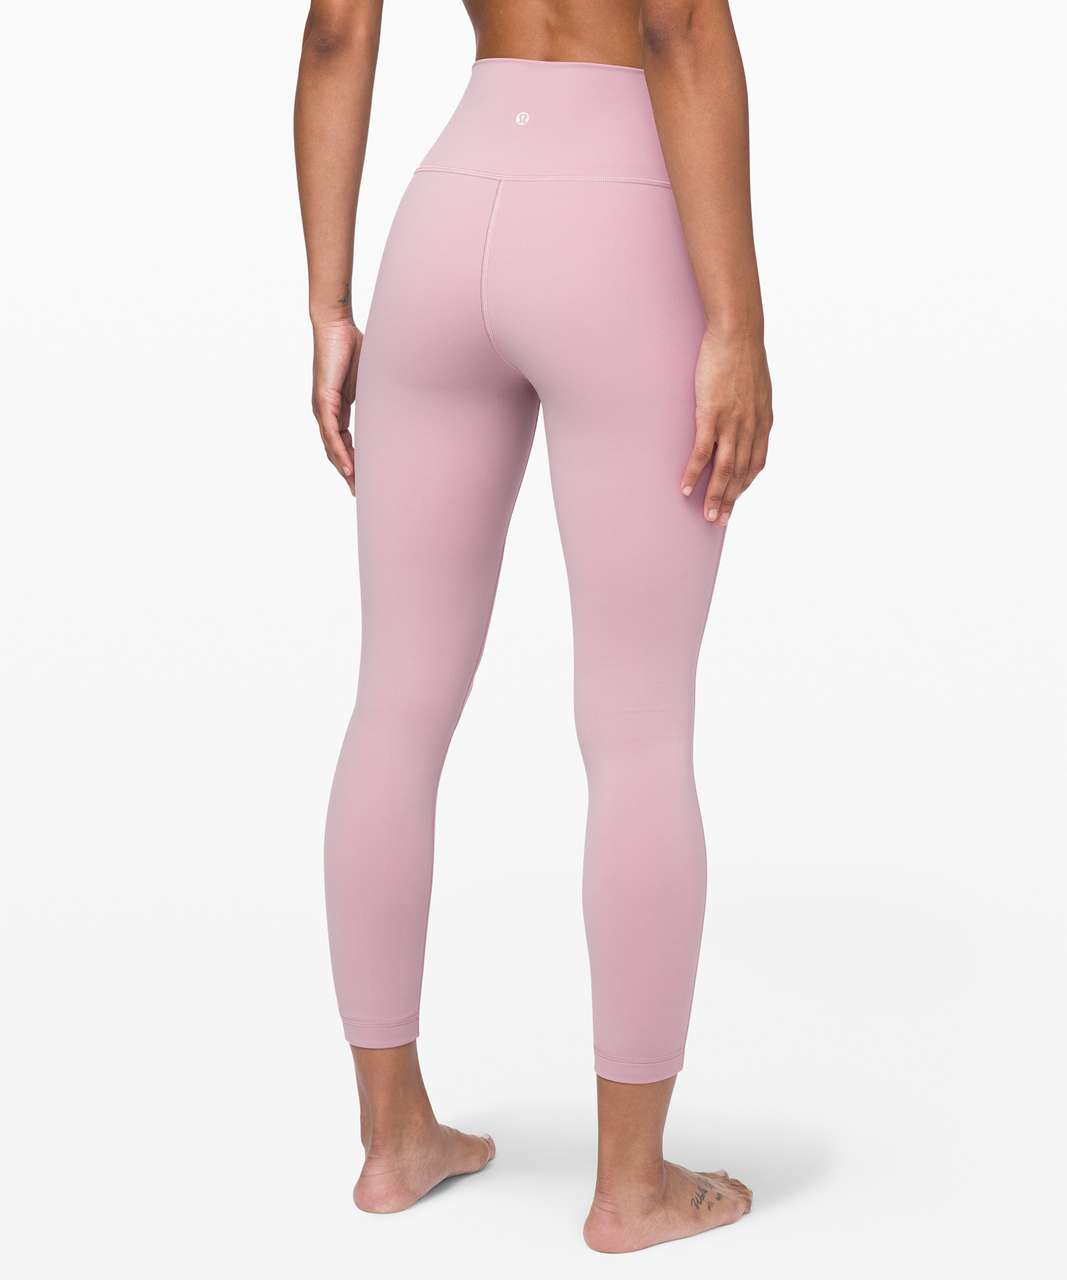 "Lululemon Wunder Under High-Rise Tight 25"" *Full-On Luxtreme - Smoky Blush"